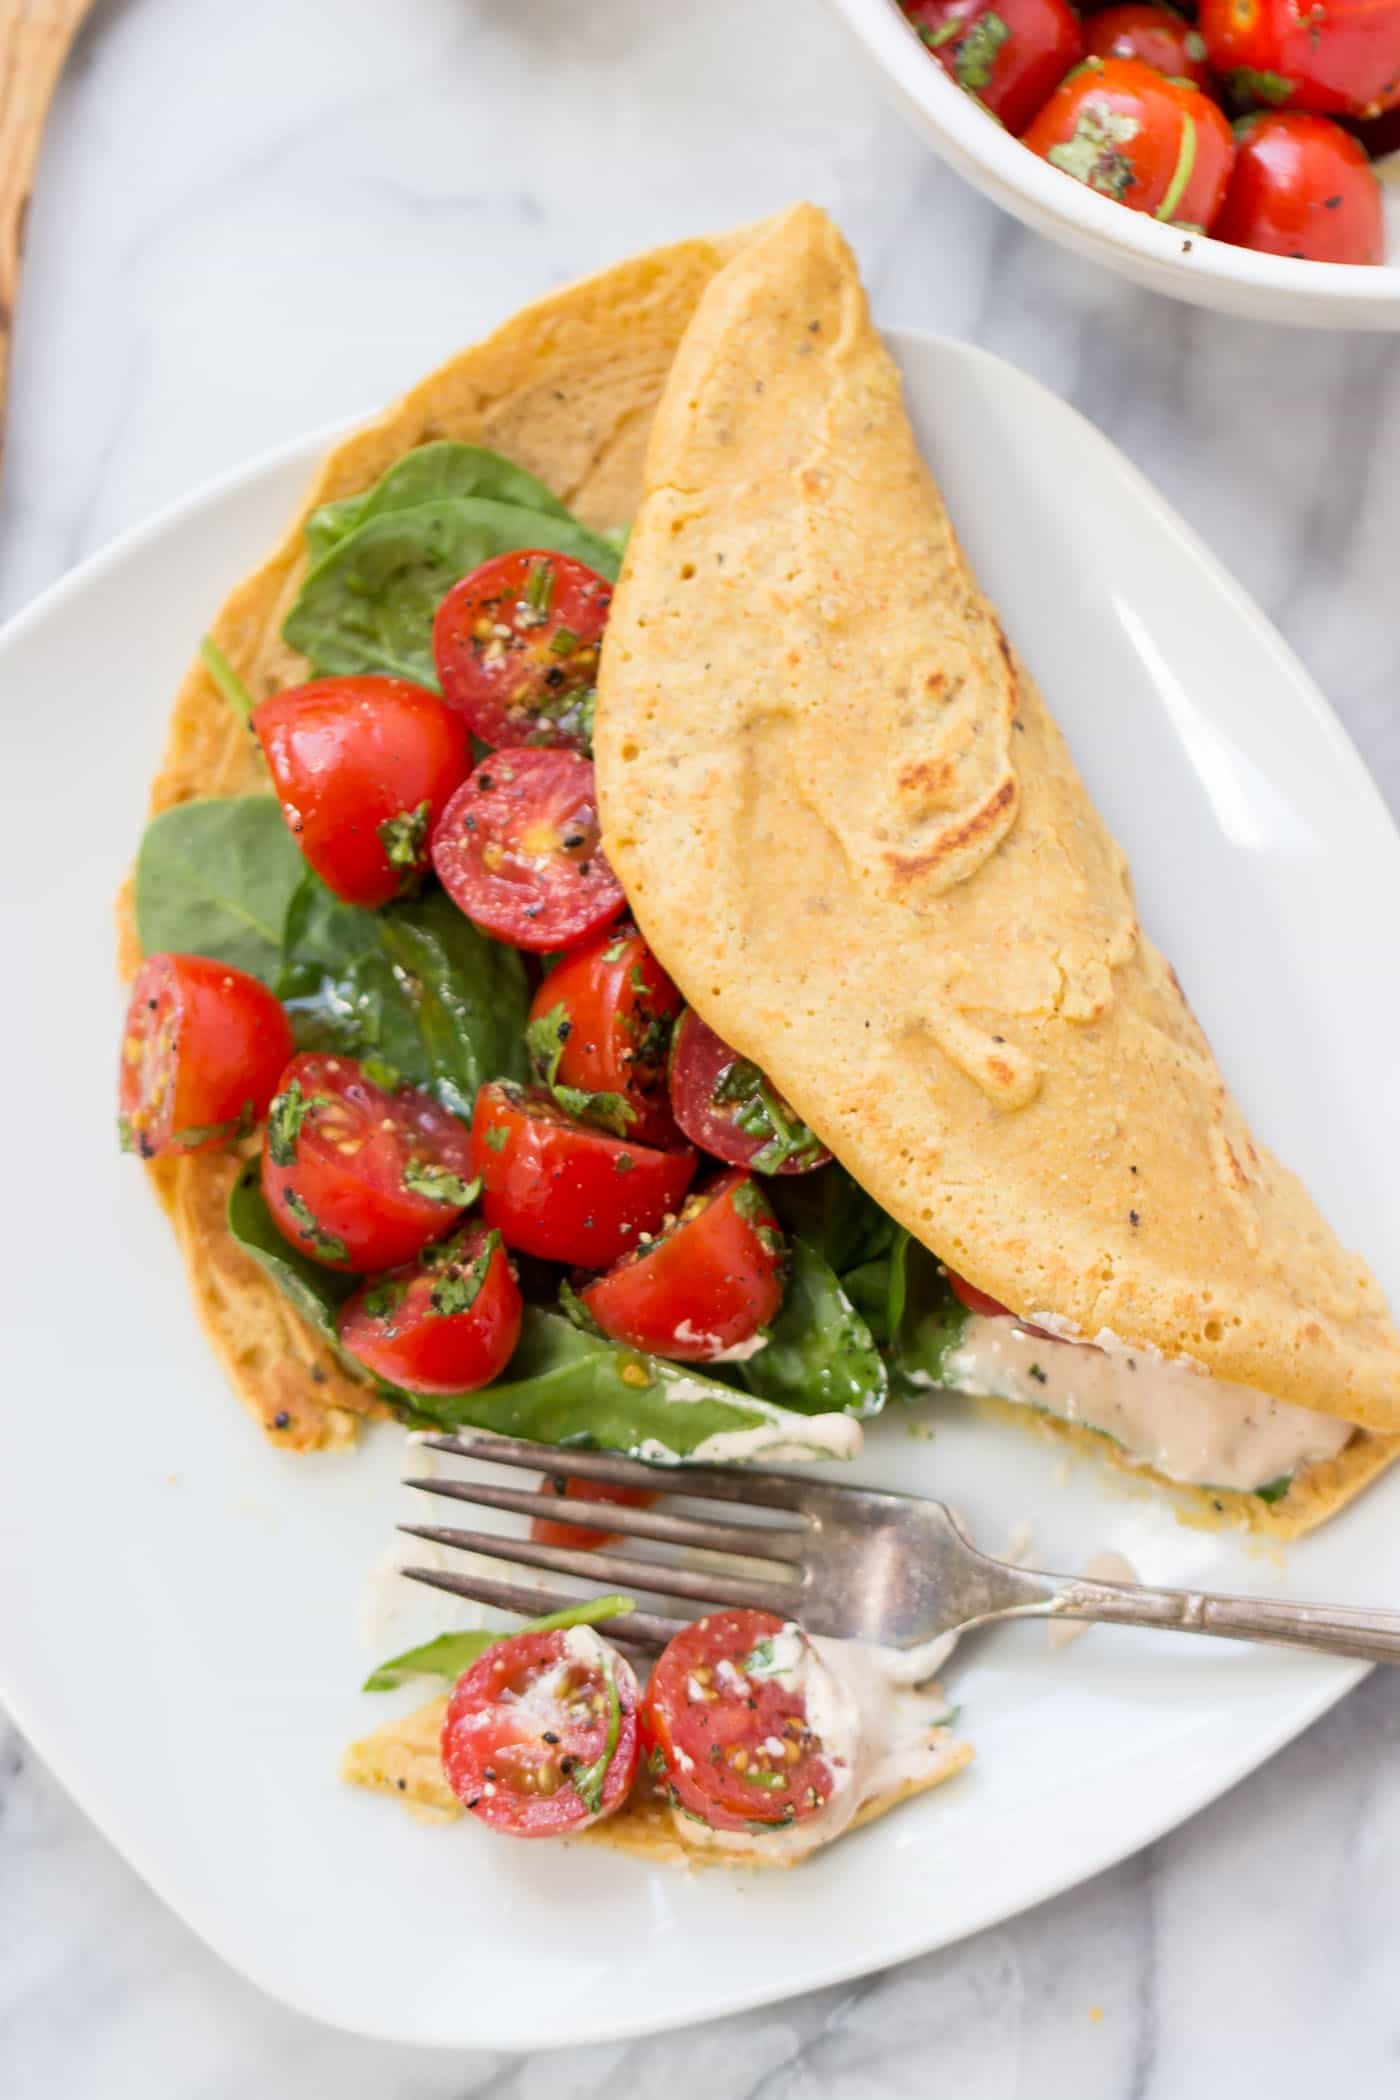 Savory chickpea pancake on a white plate for an easy vegan brunch.